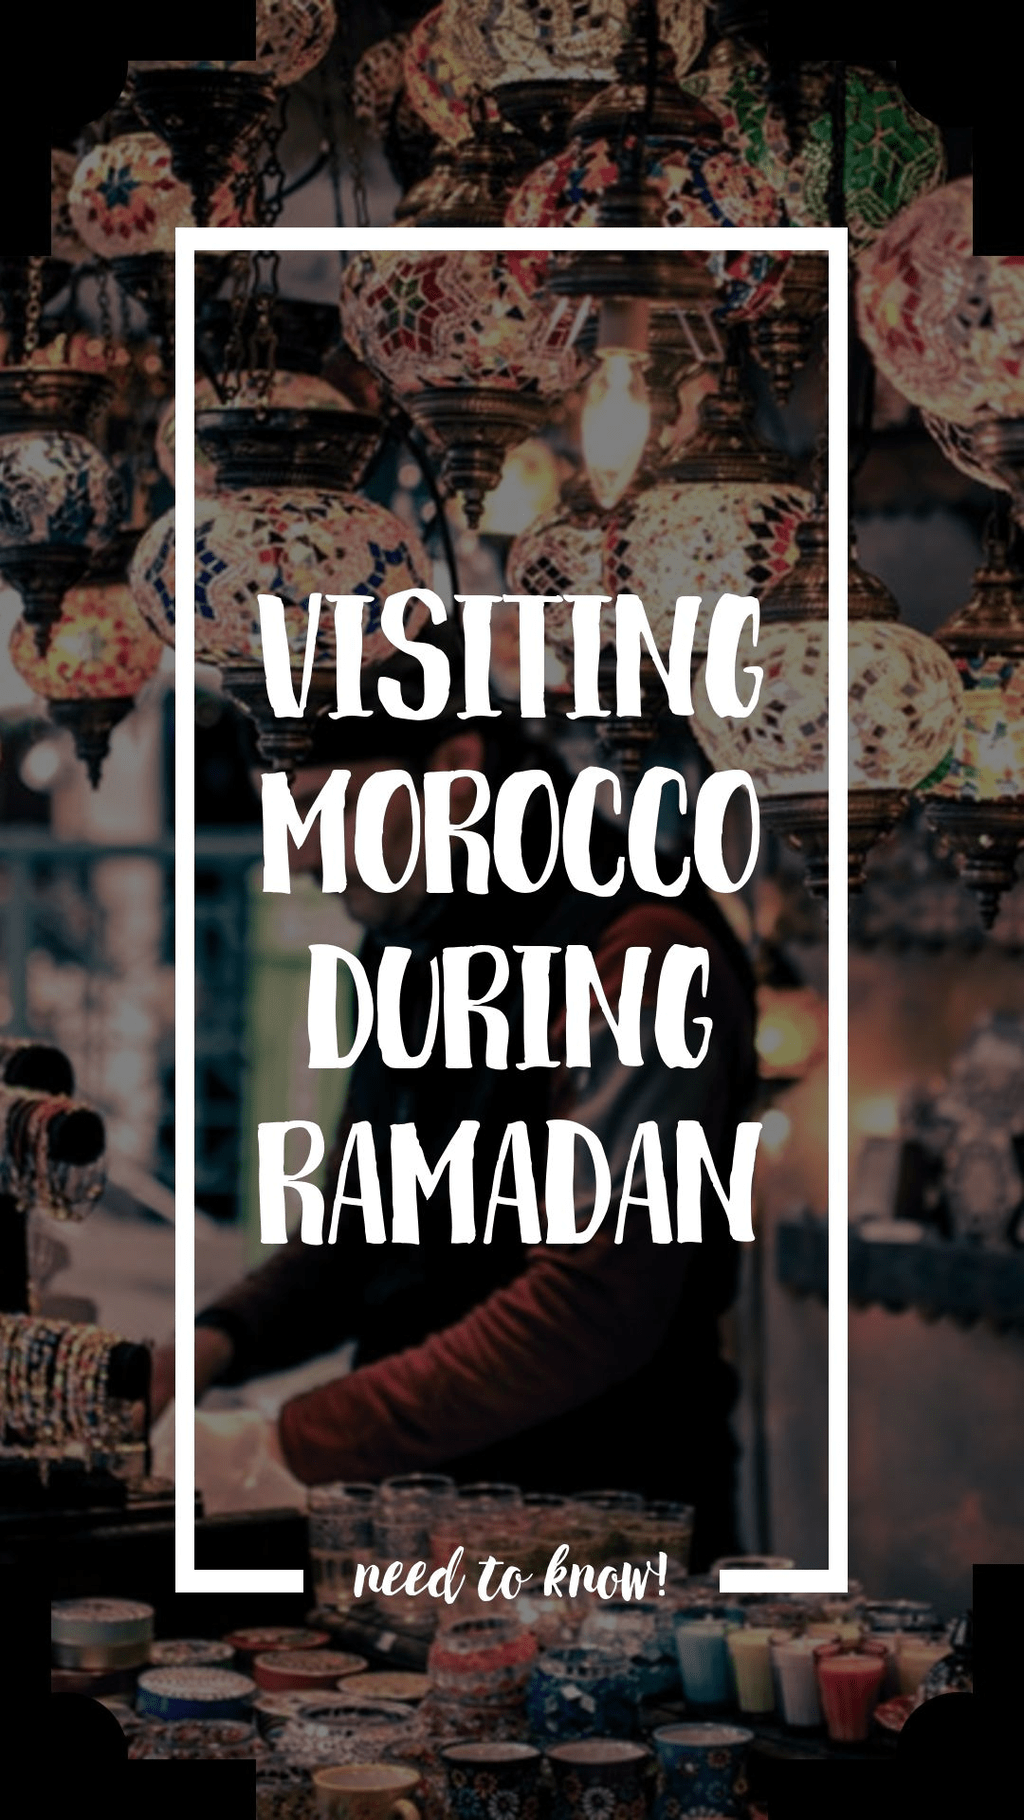 If you're visiting #Morocco during #Ramadan, there are a few important things to keep in mind to make the most of your visit.